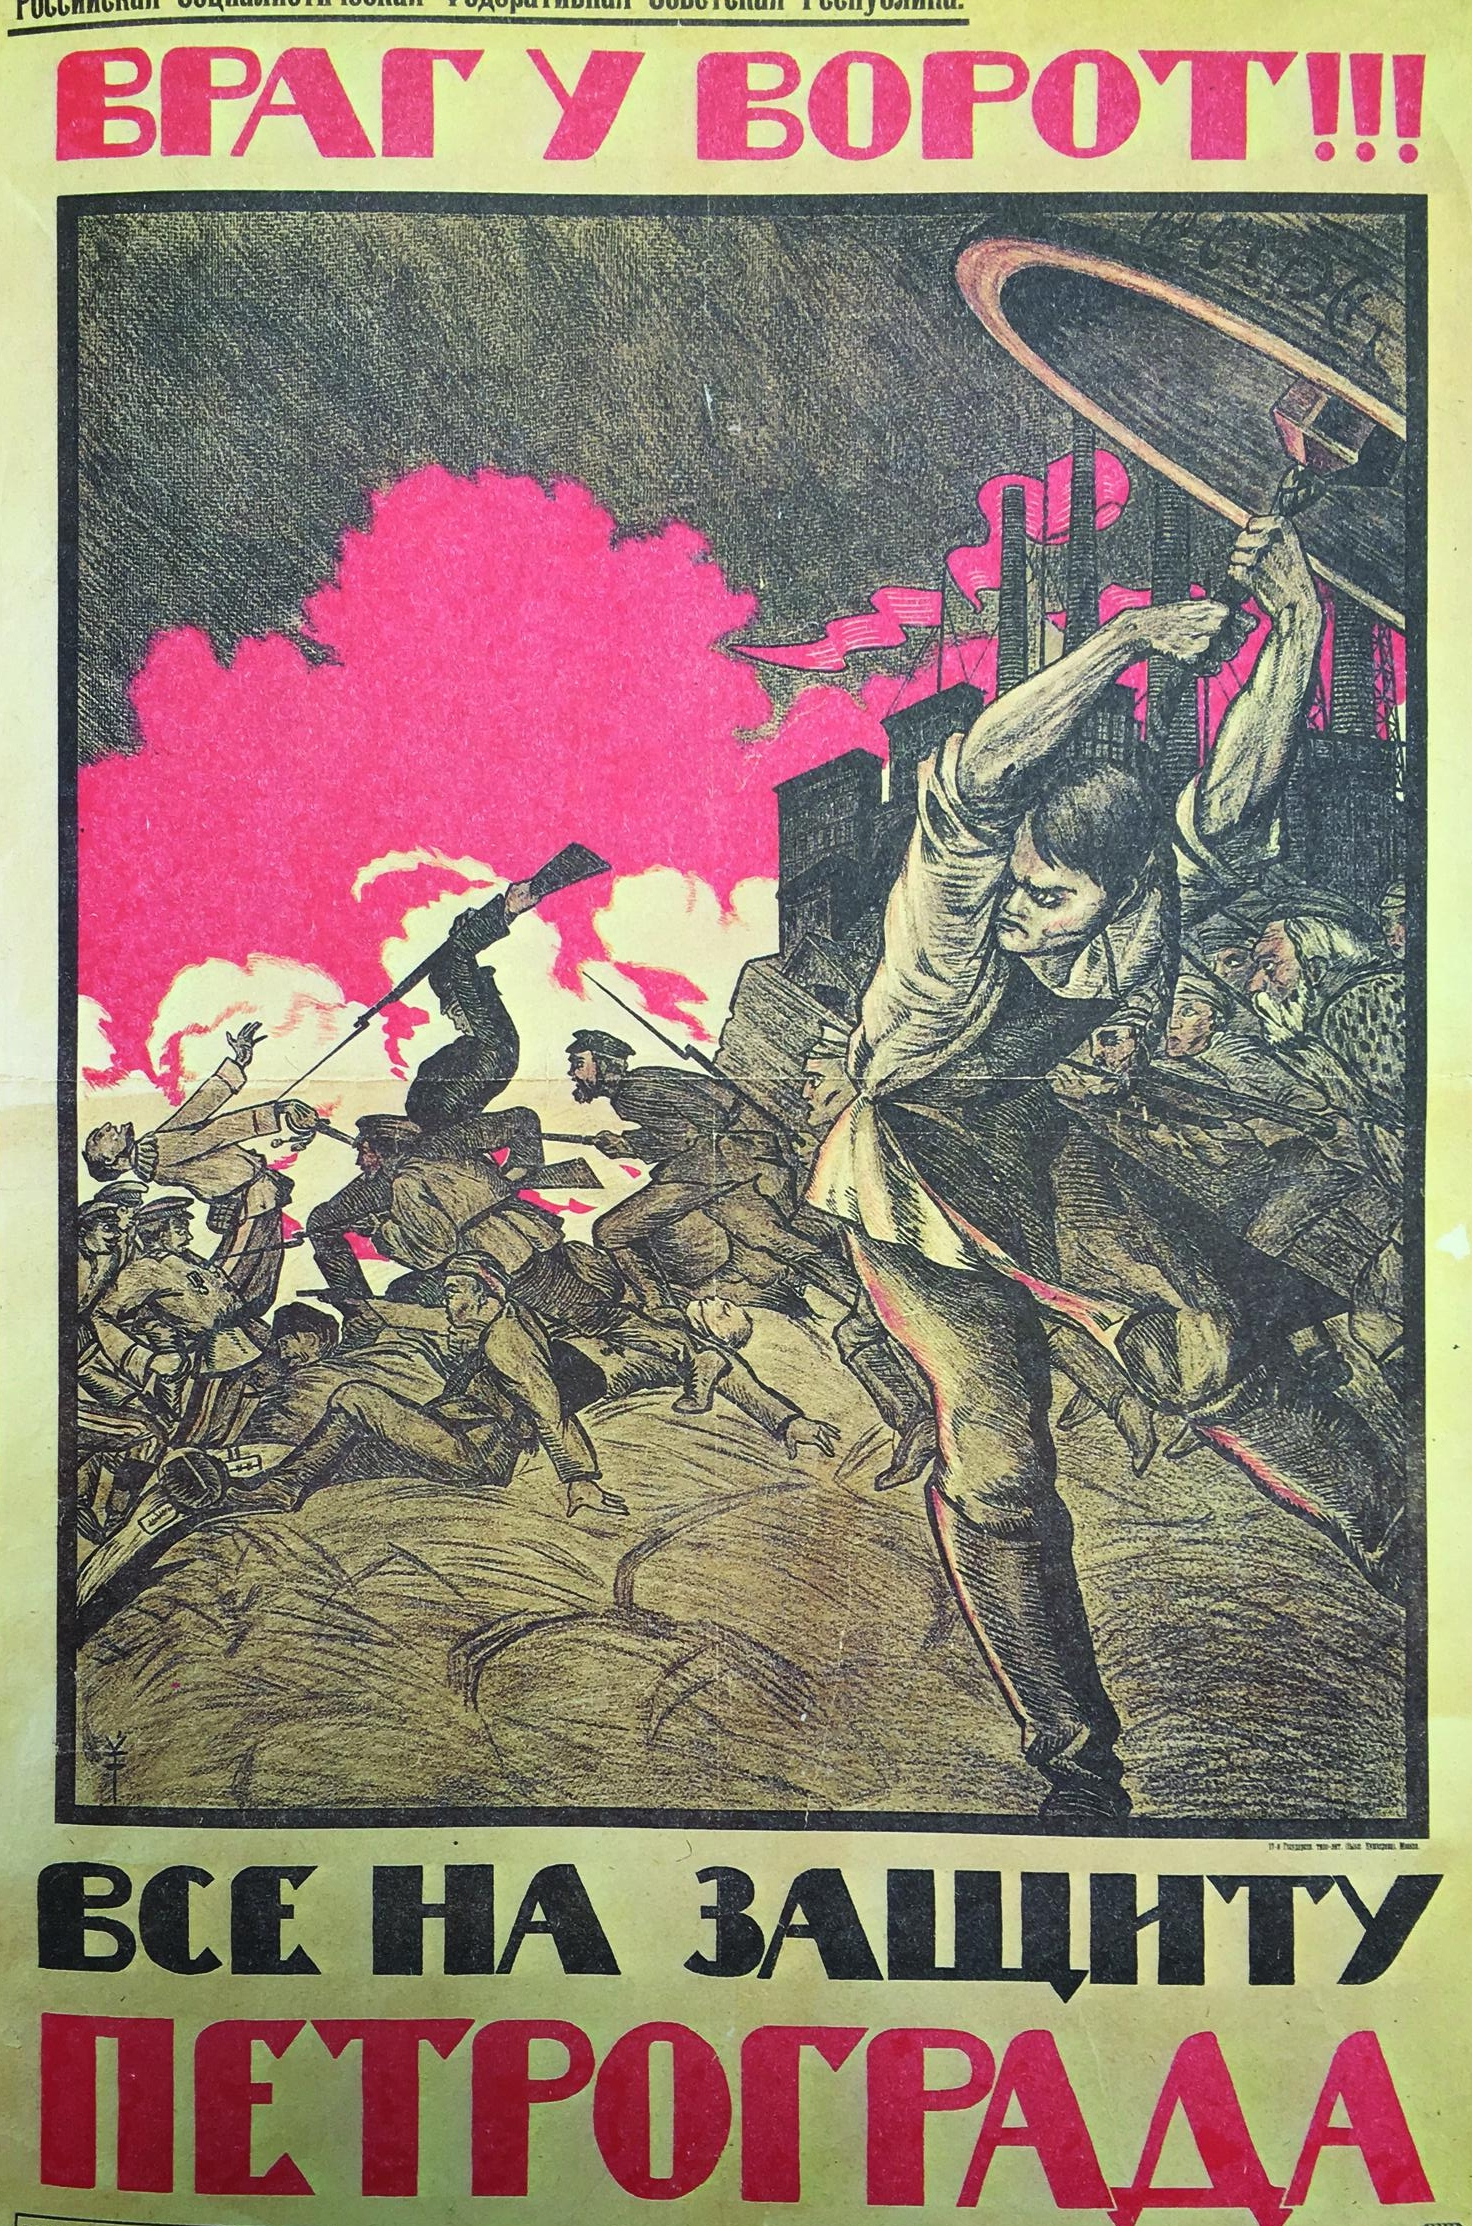 """Poster by Nikolai Kochergin, 1919: """" The enemy is at the gate! Stand up and defend Petrograd!"""""""